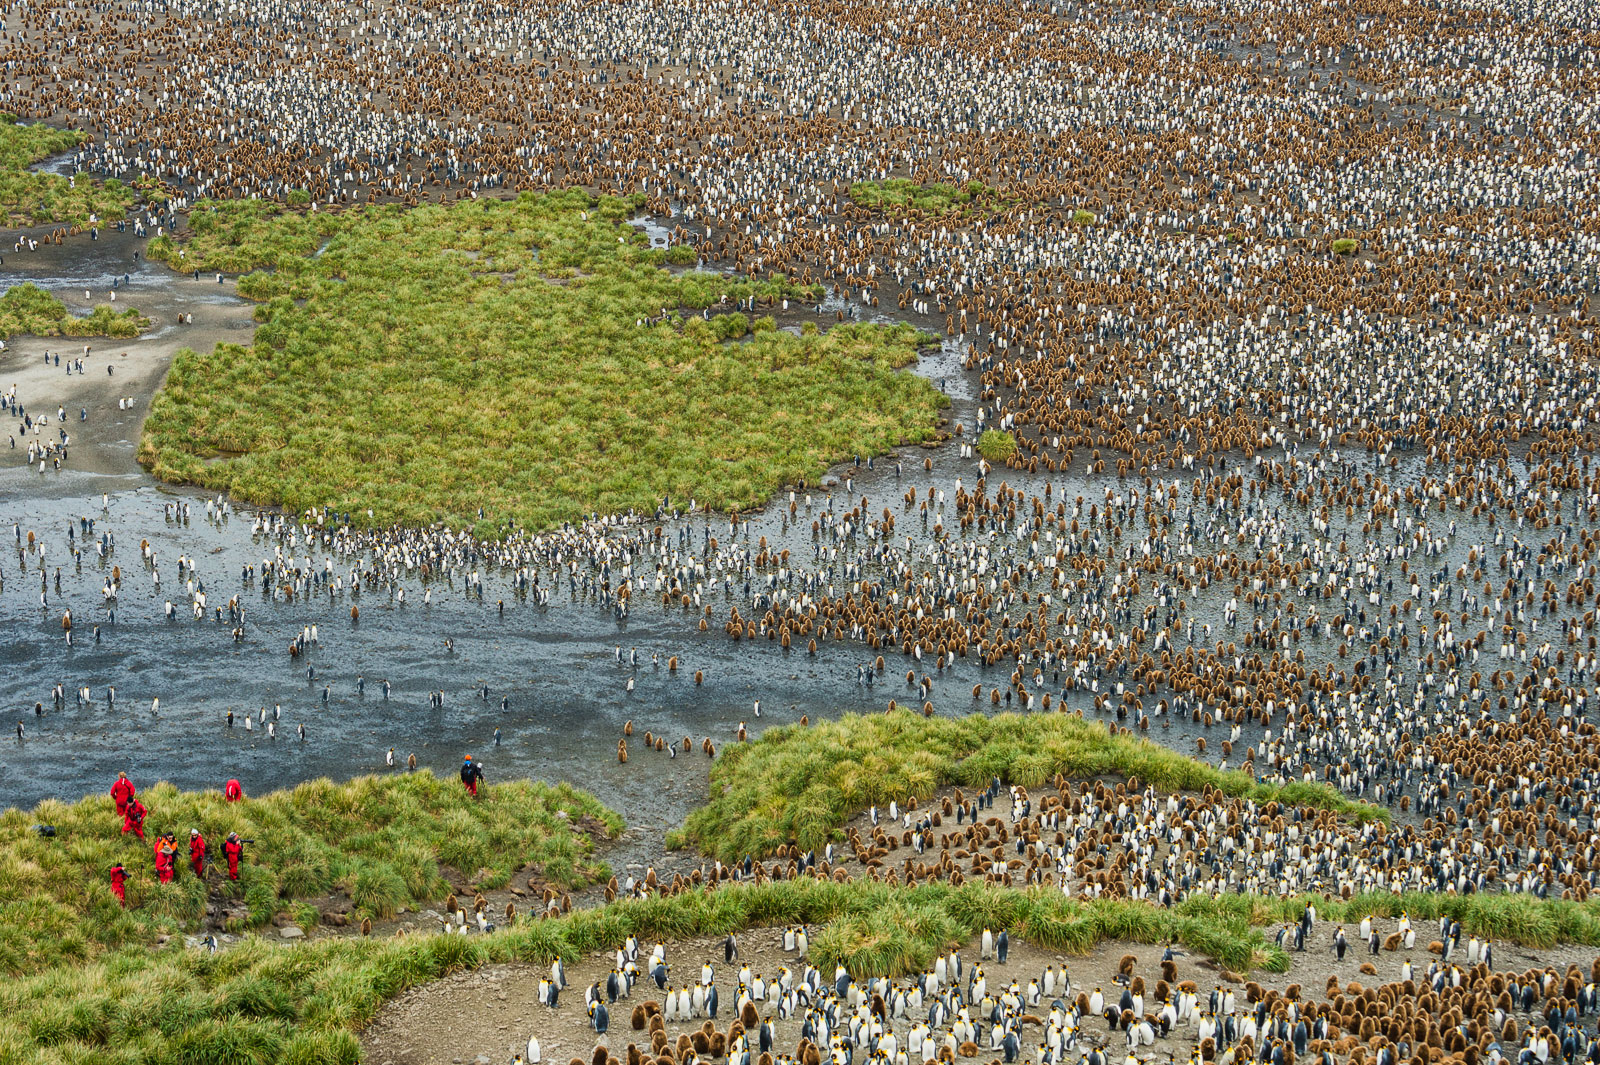 Tourists at edge of King Penguin colony, Salisbury Plain, South Georgia Island, Antarctica